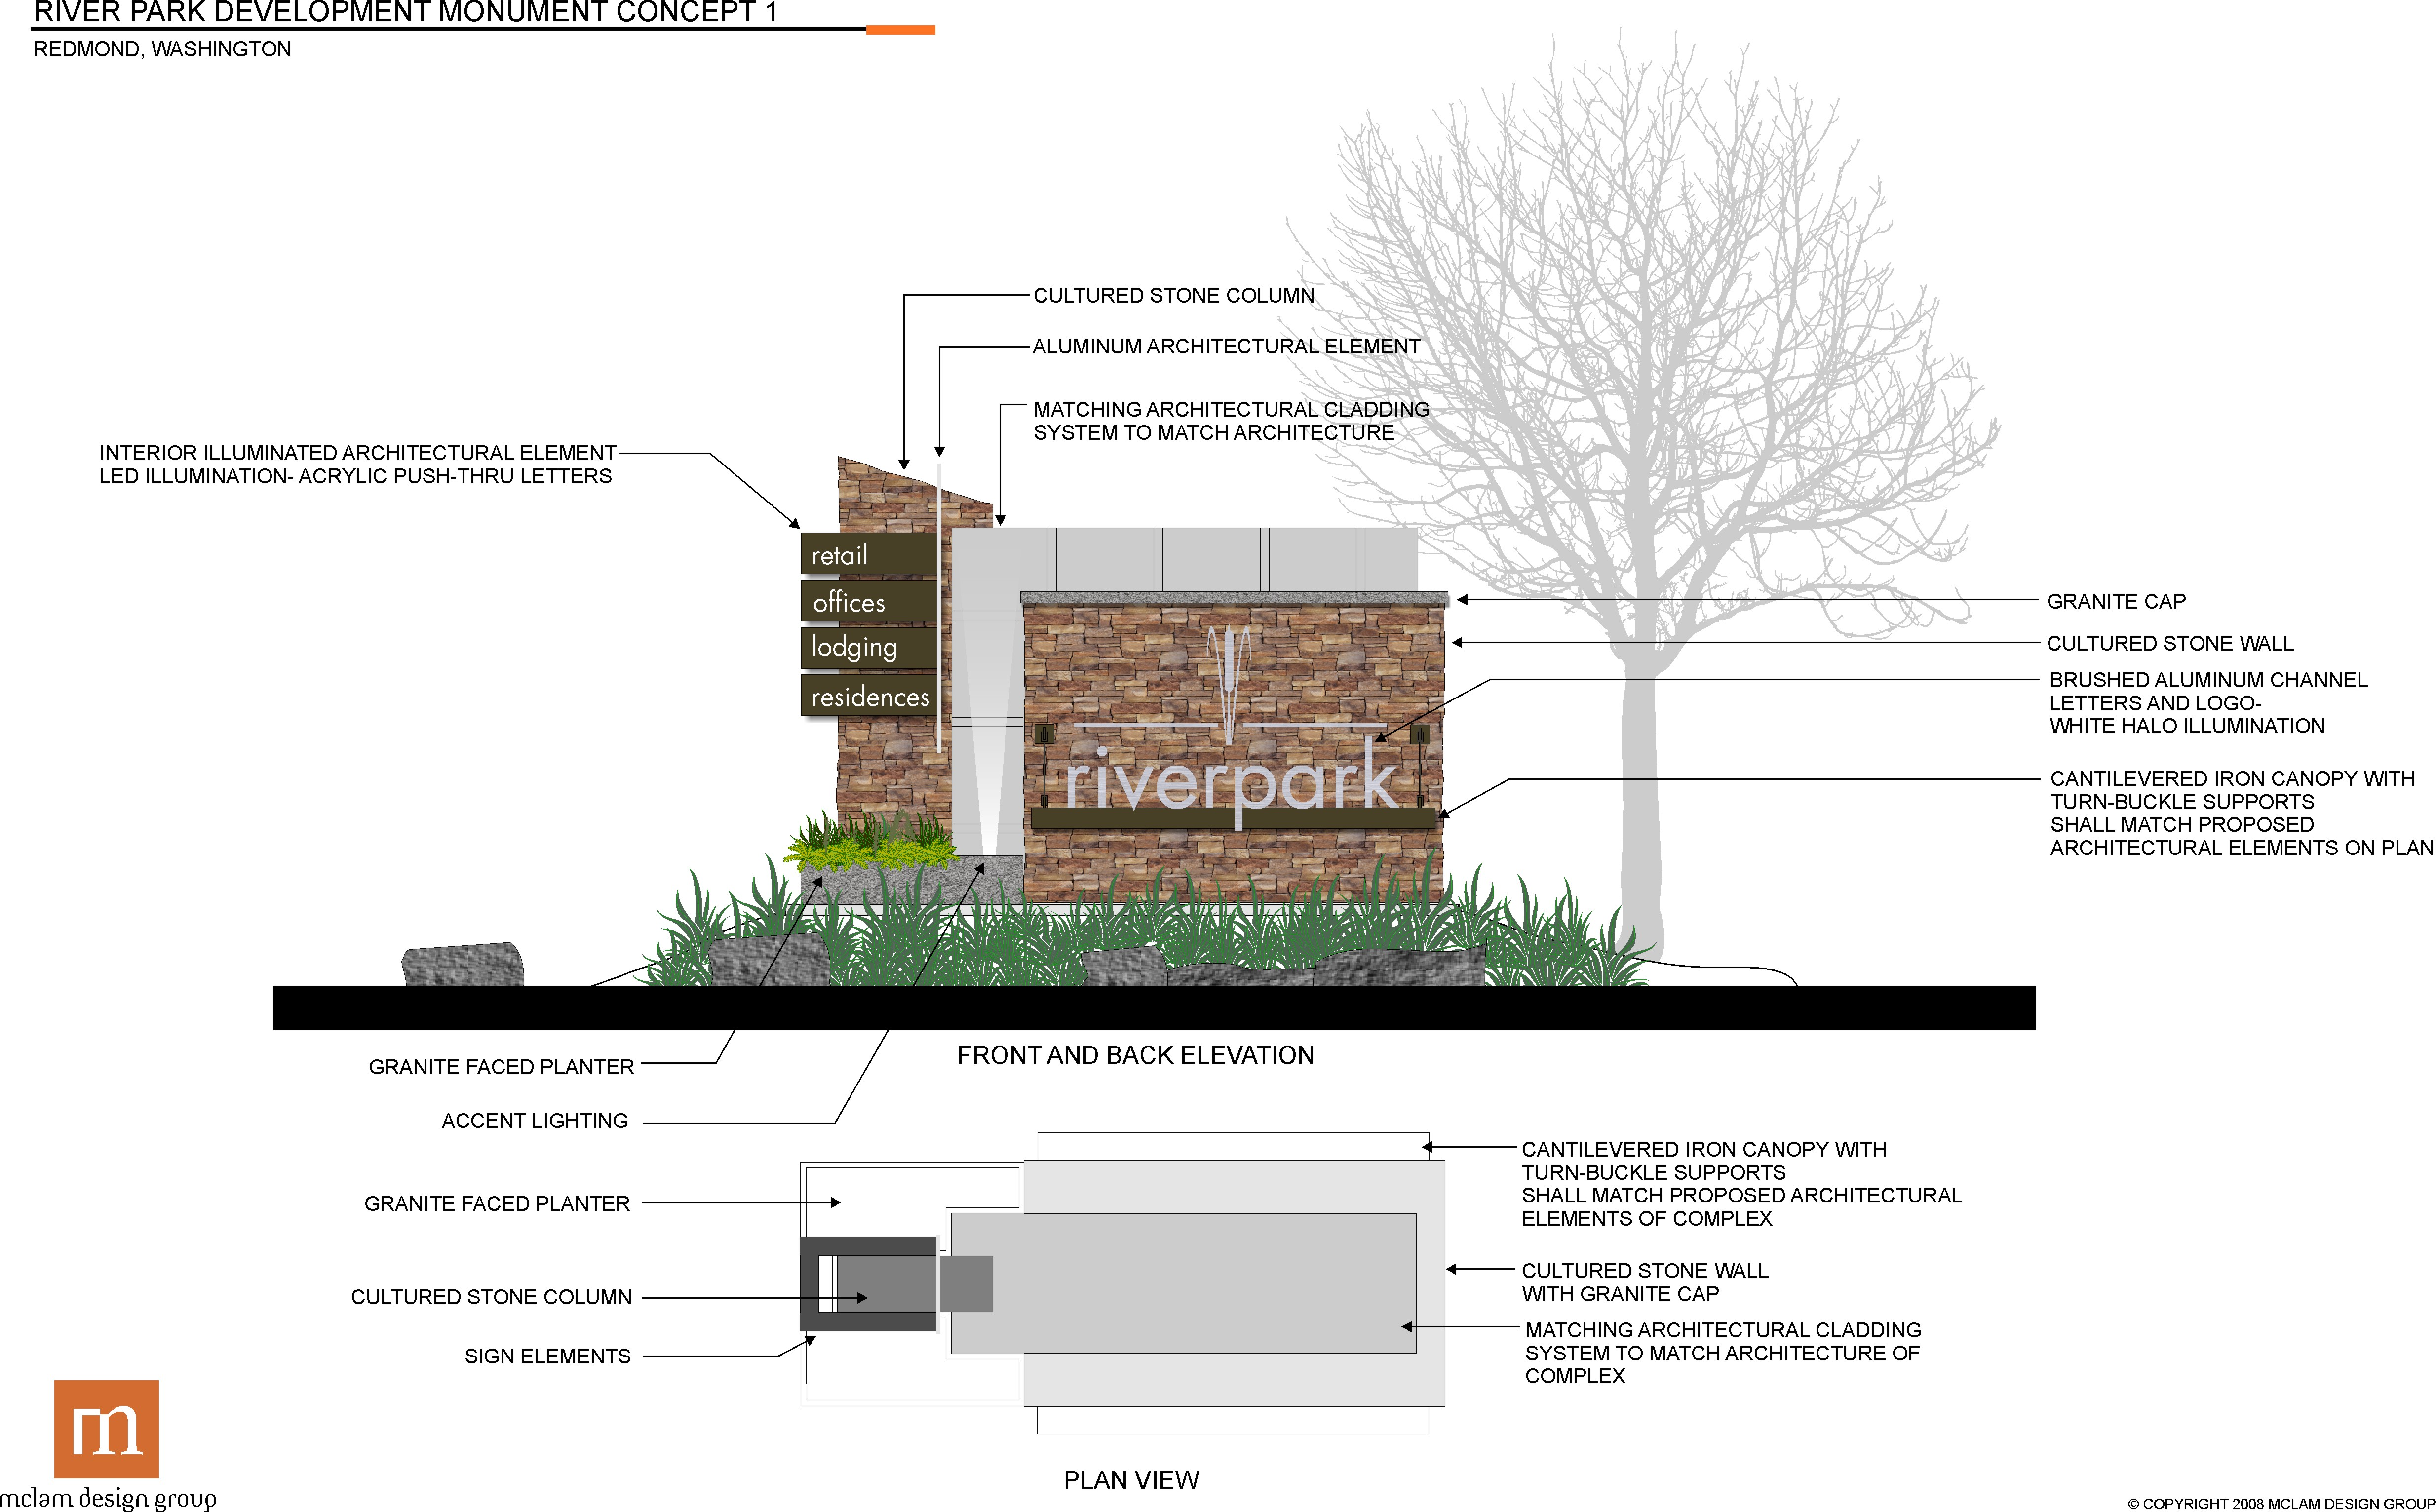 Architectural Signage Sign Monuments And Display Design By Dale Mclam Freelance At Coroflot Com